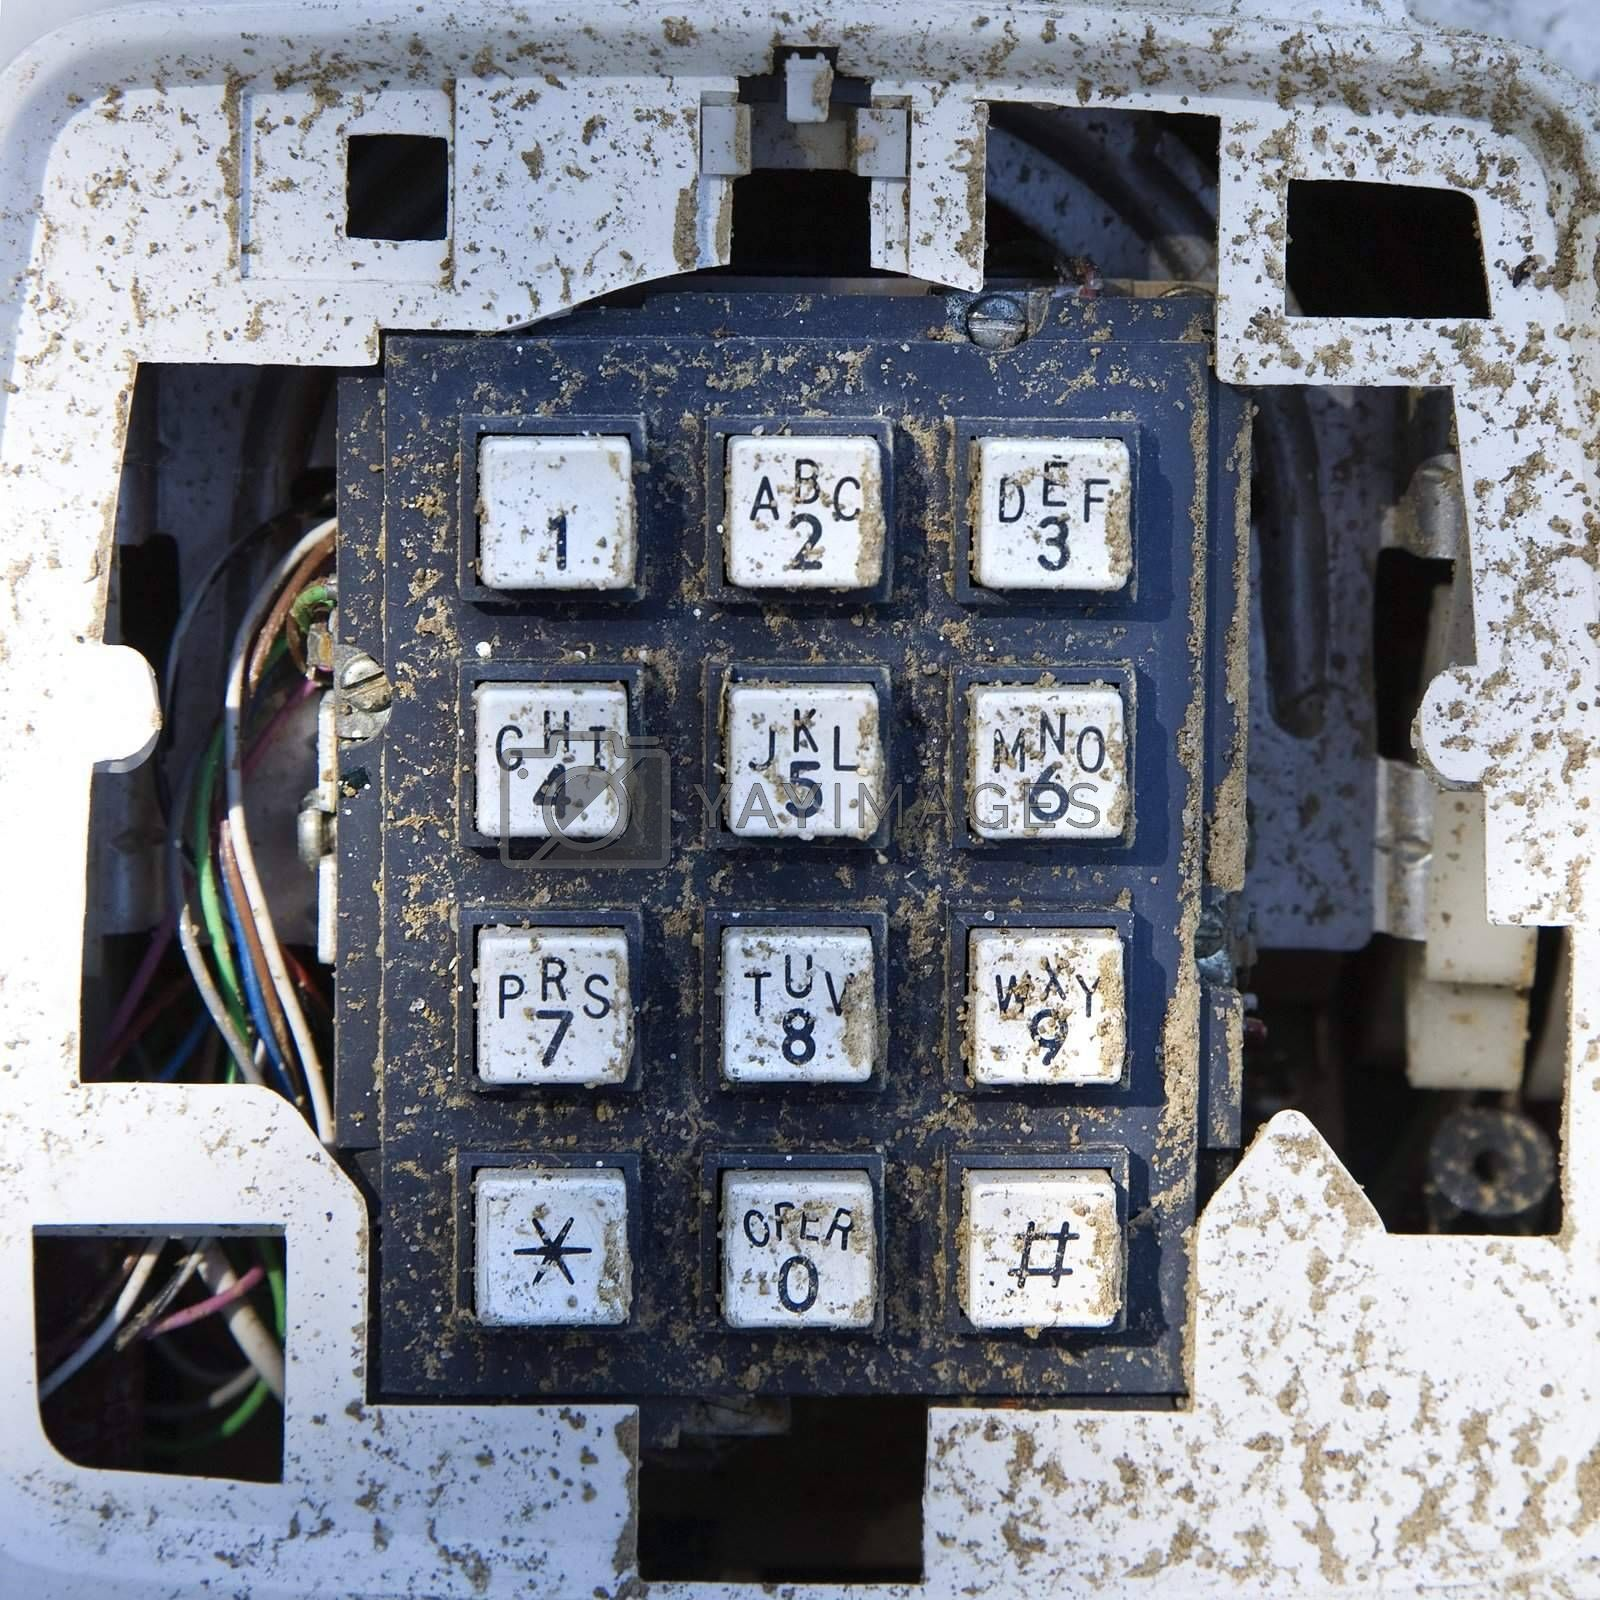 Closeup of old dirty telephone keypad.